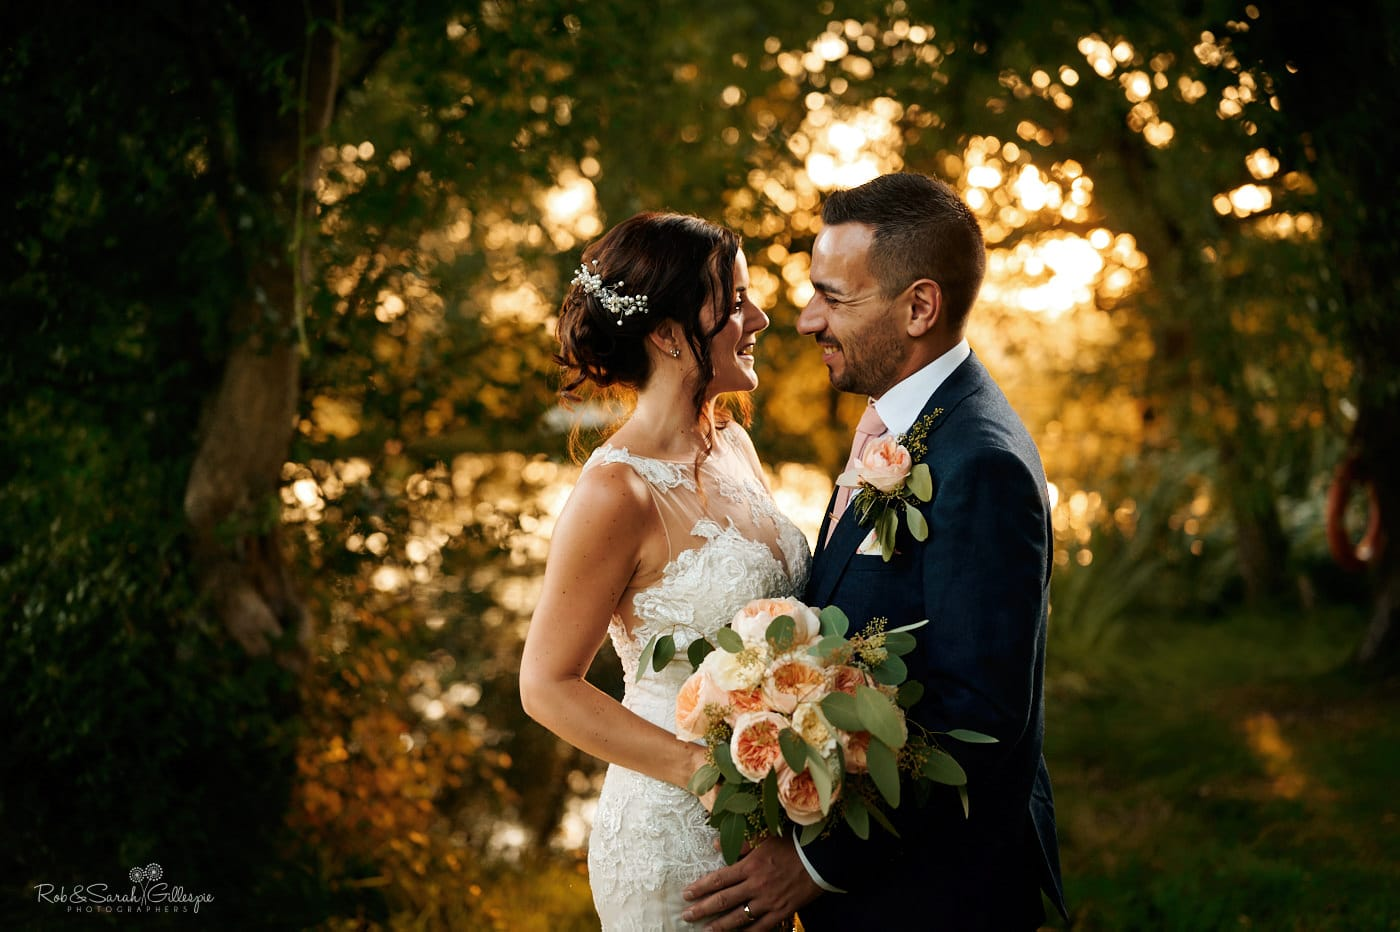 Bride and groom laughing together in gardens at Gorcott Hall in beautiful evening light